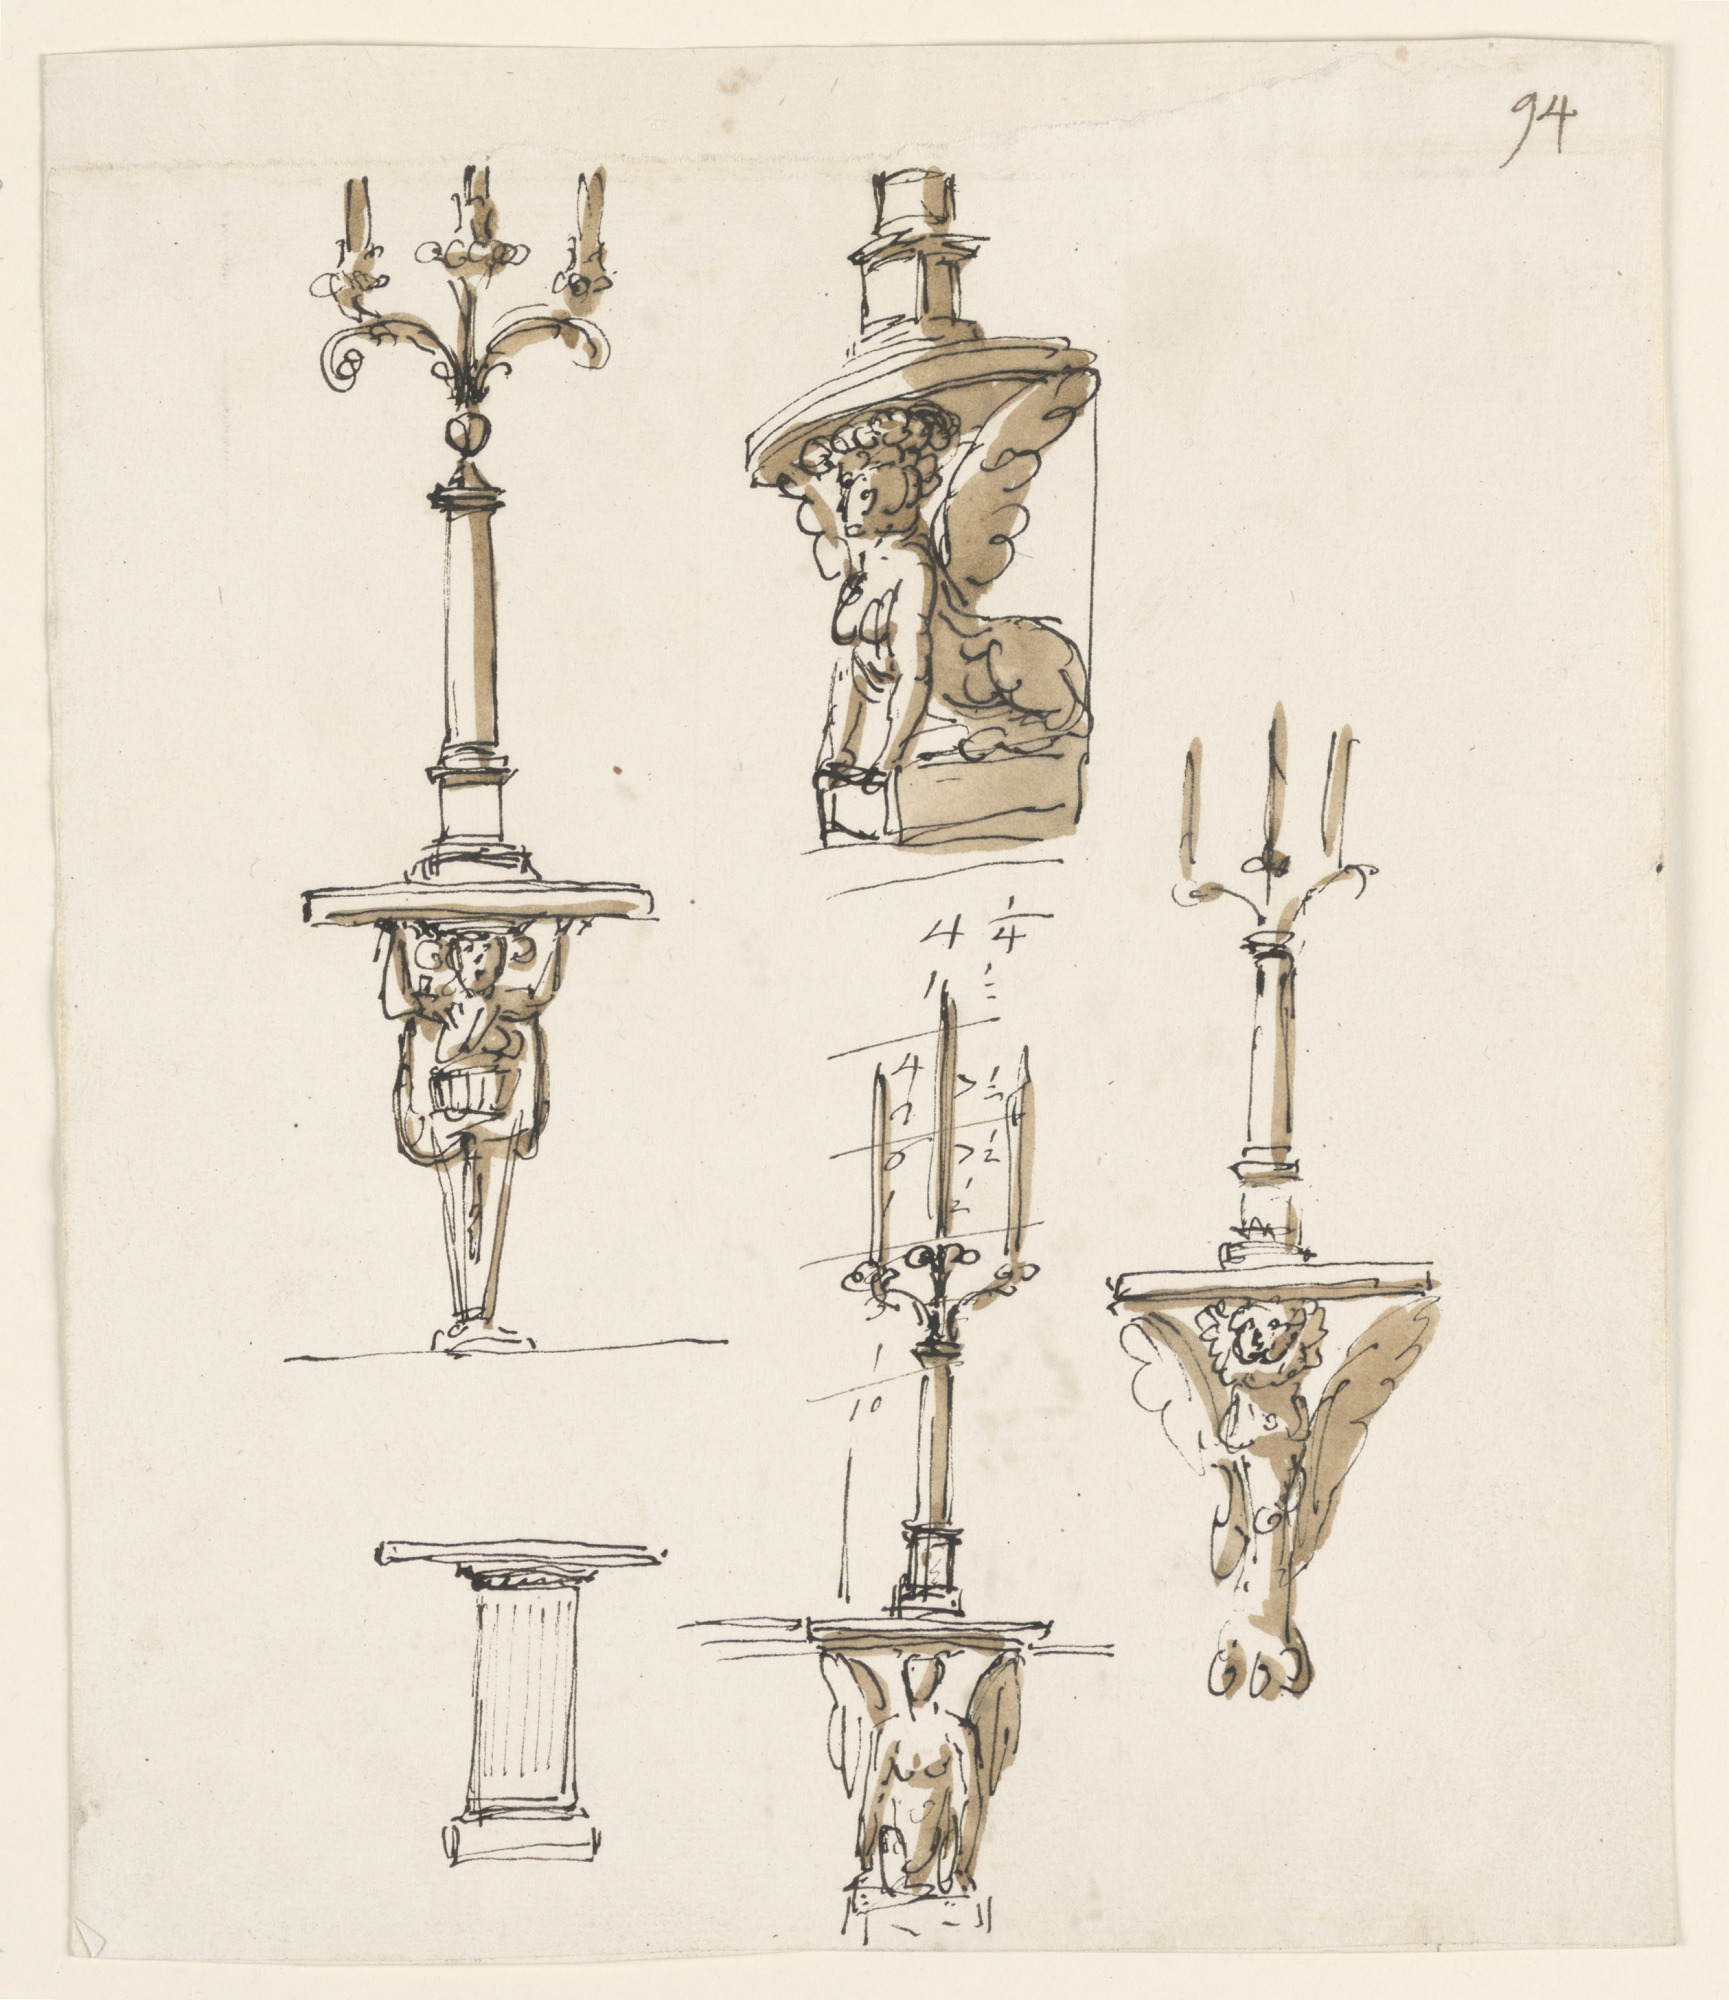 Five console tables, three with candlesticks